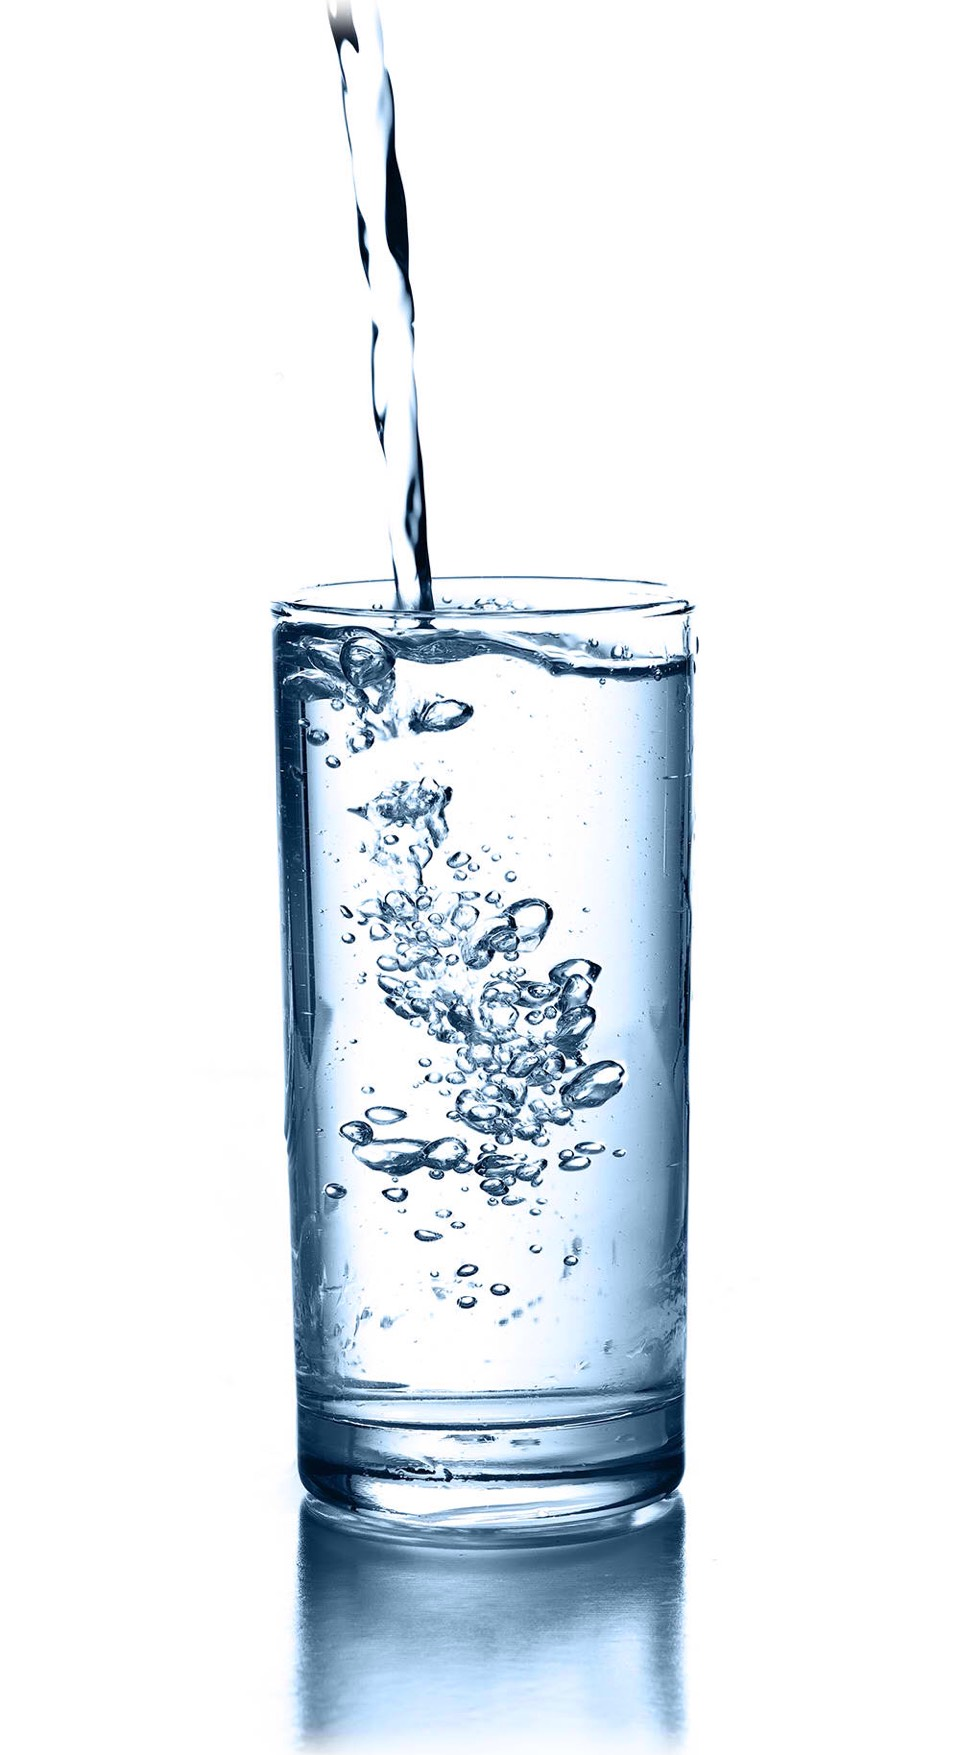 If you're getting pimples, drink more water so your skin stays fresh and hydrated.